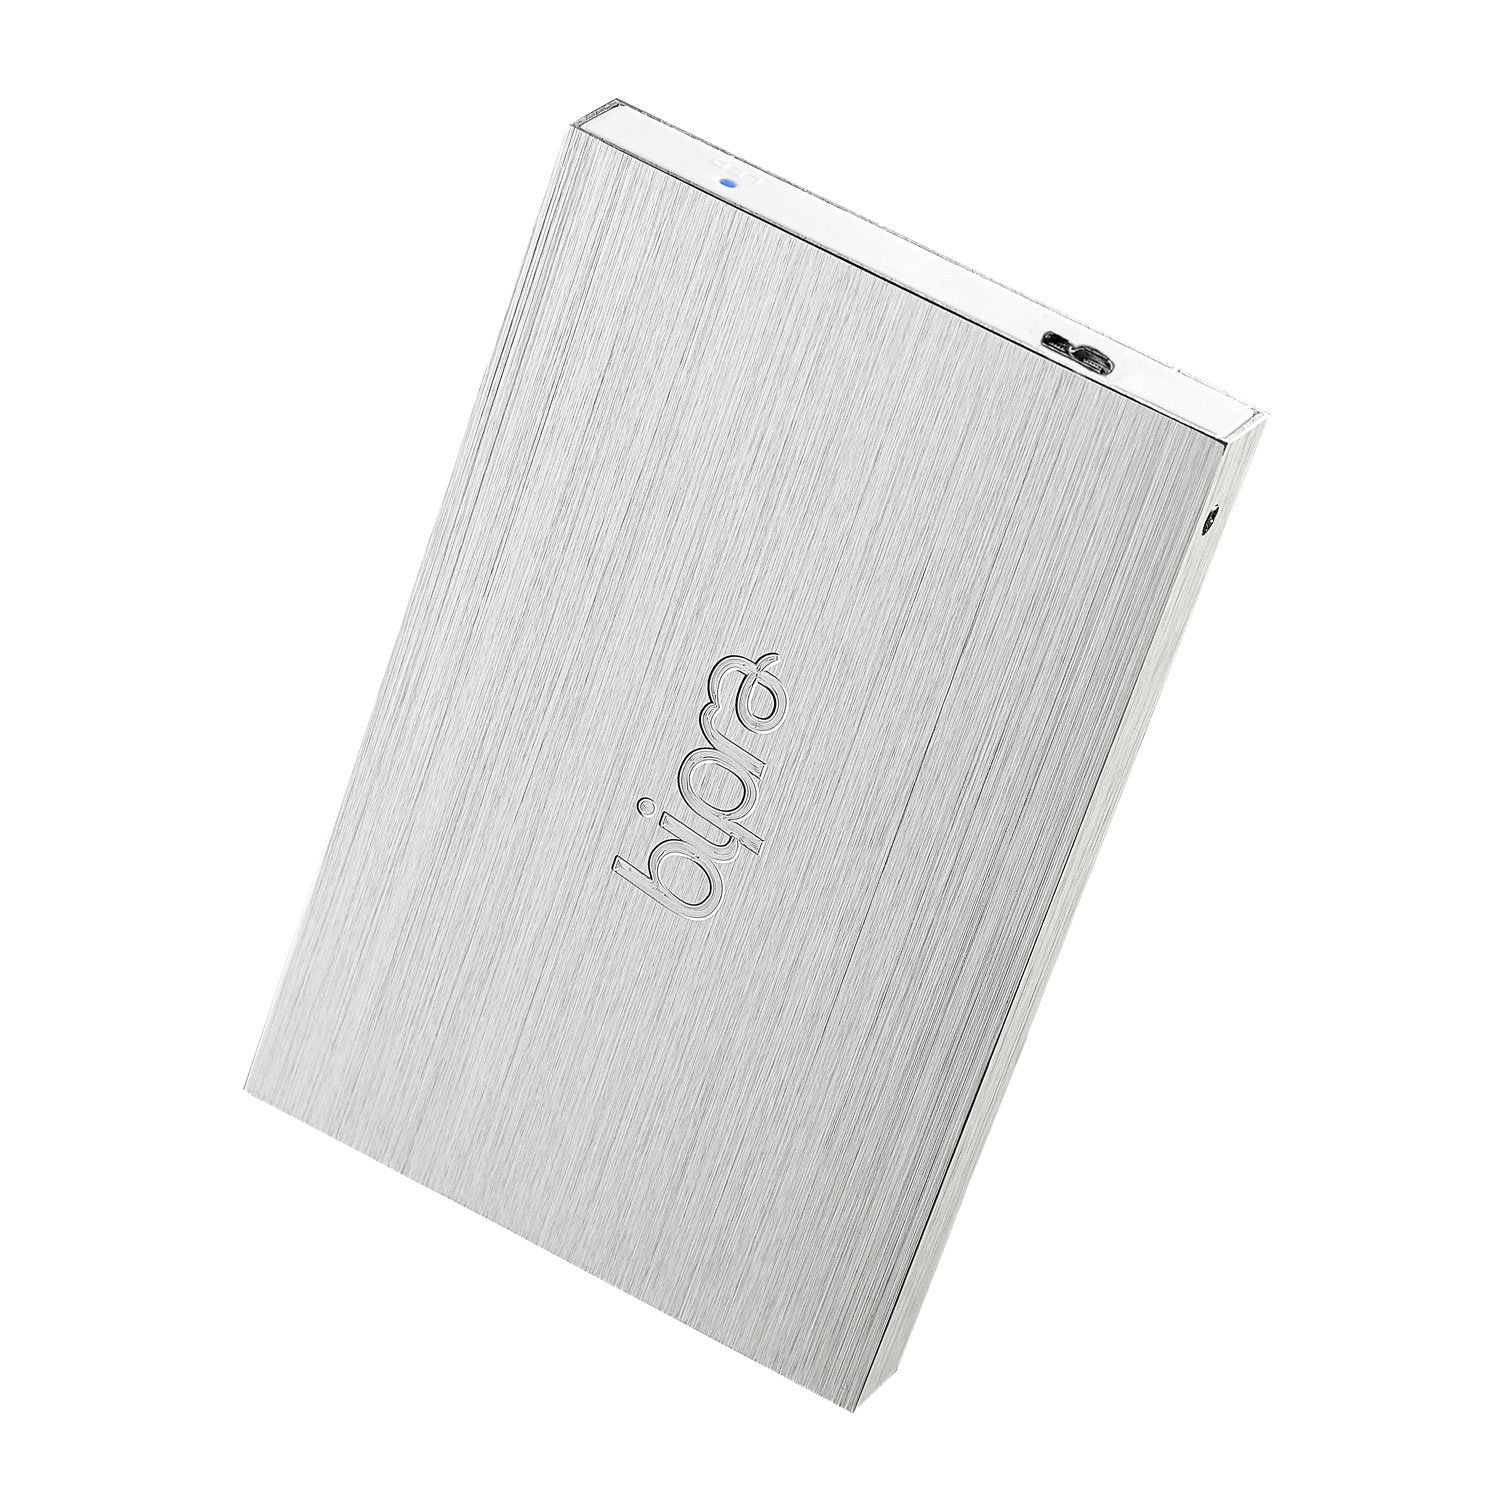 Bipra 320GB 320 GB USB 3.0 2.5 inch Mac Edition Portable External Hard Drive -Silver - Mac OS Extended (Journaled)